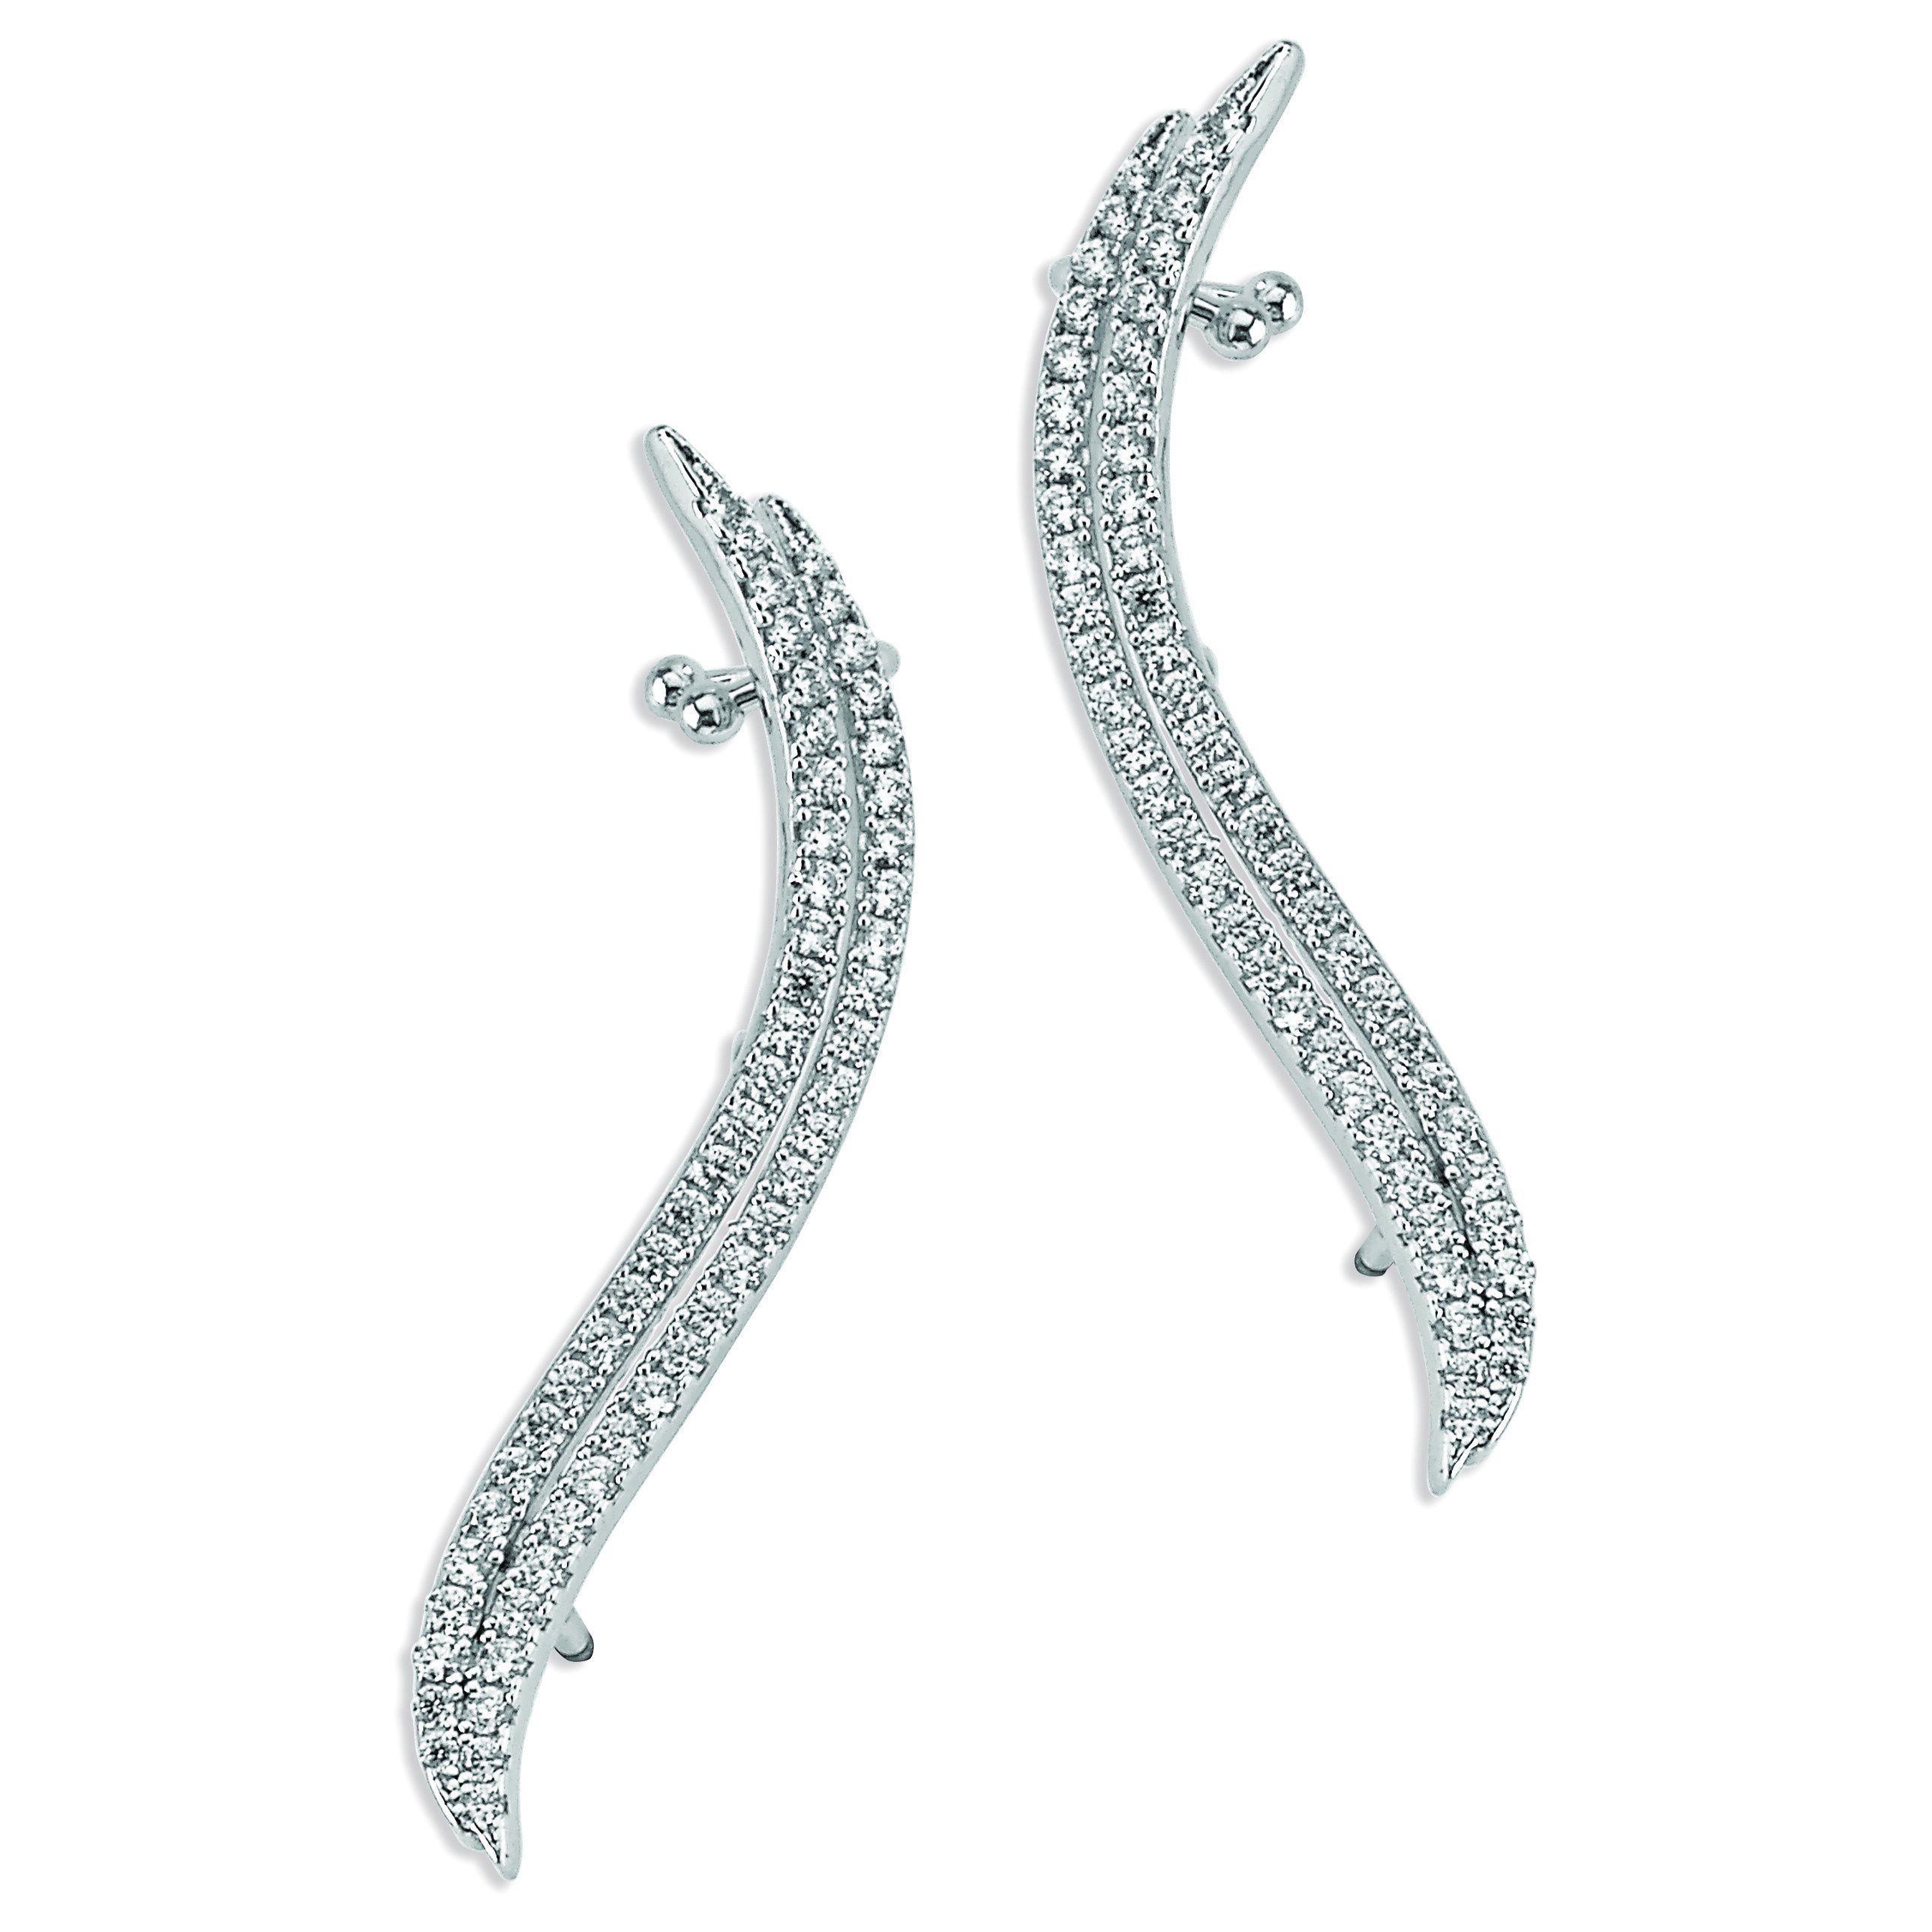 Plated Sterling Silver Cubic Zirconia Ear Climbers (Sterling Silver CZ Ear Climbers), Women's, Size: Small, White